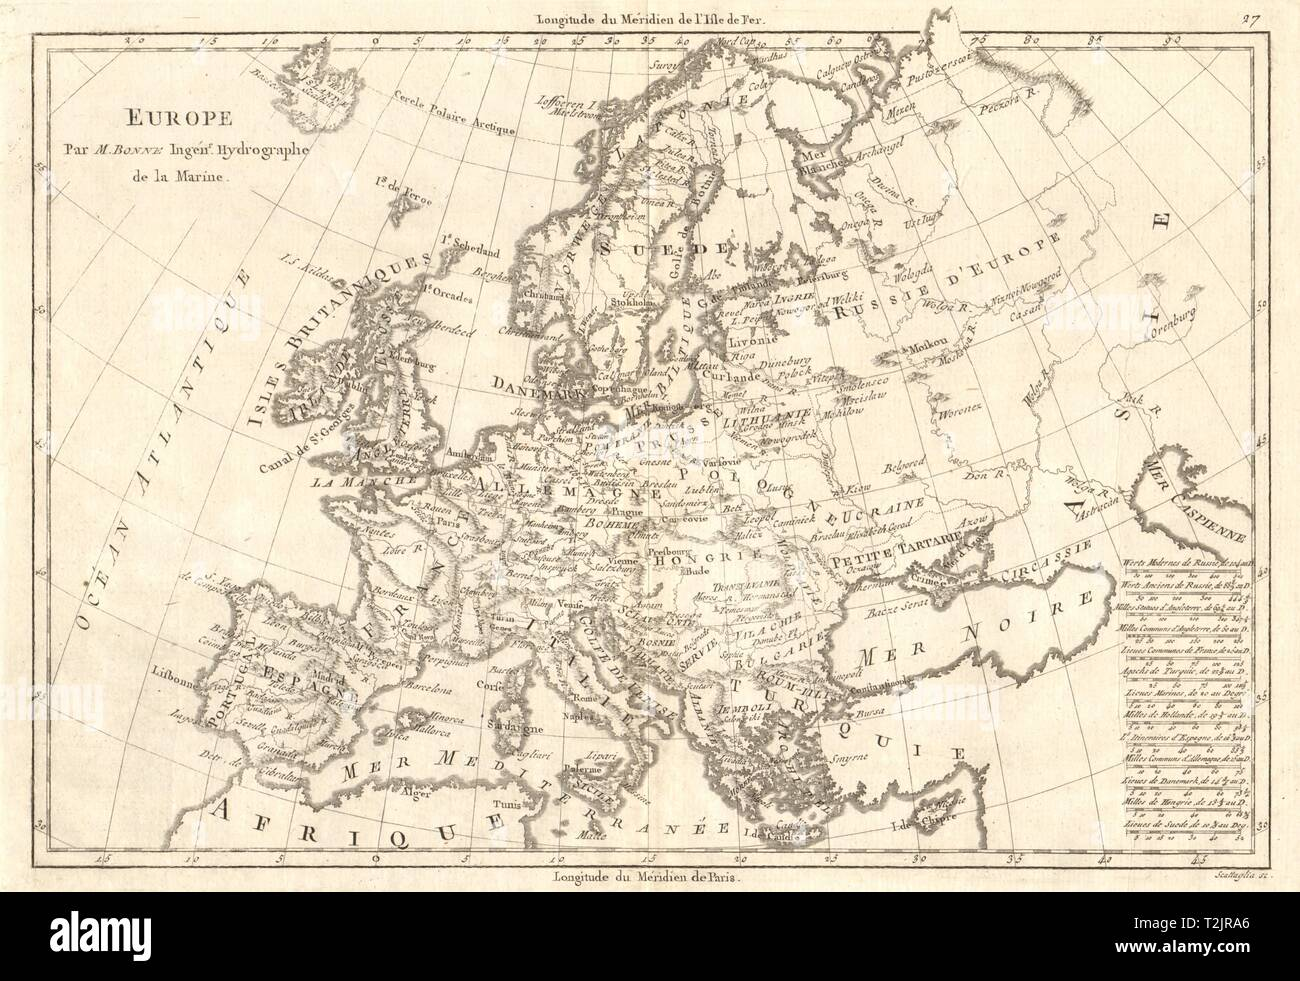 Antique map of Europe by BONNE 1789 old vintage plan chart - Stock Image